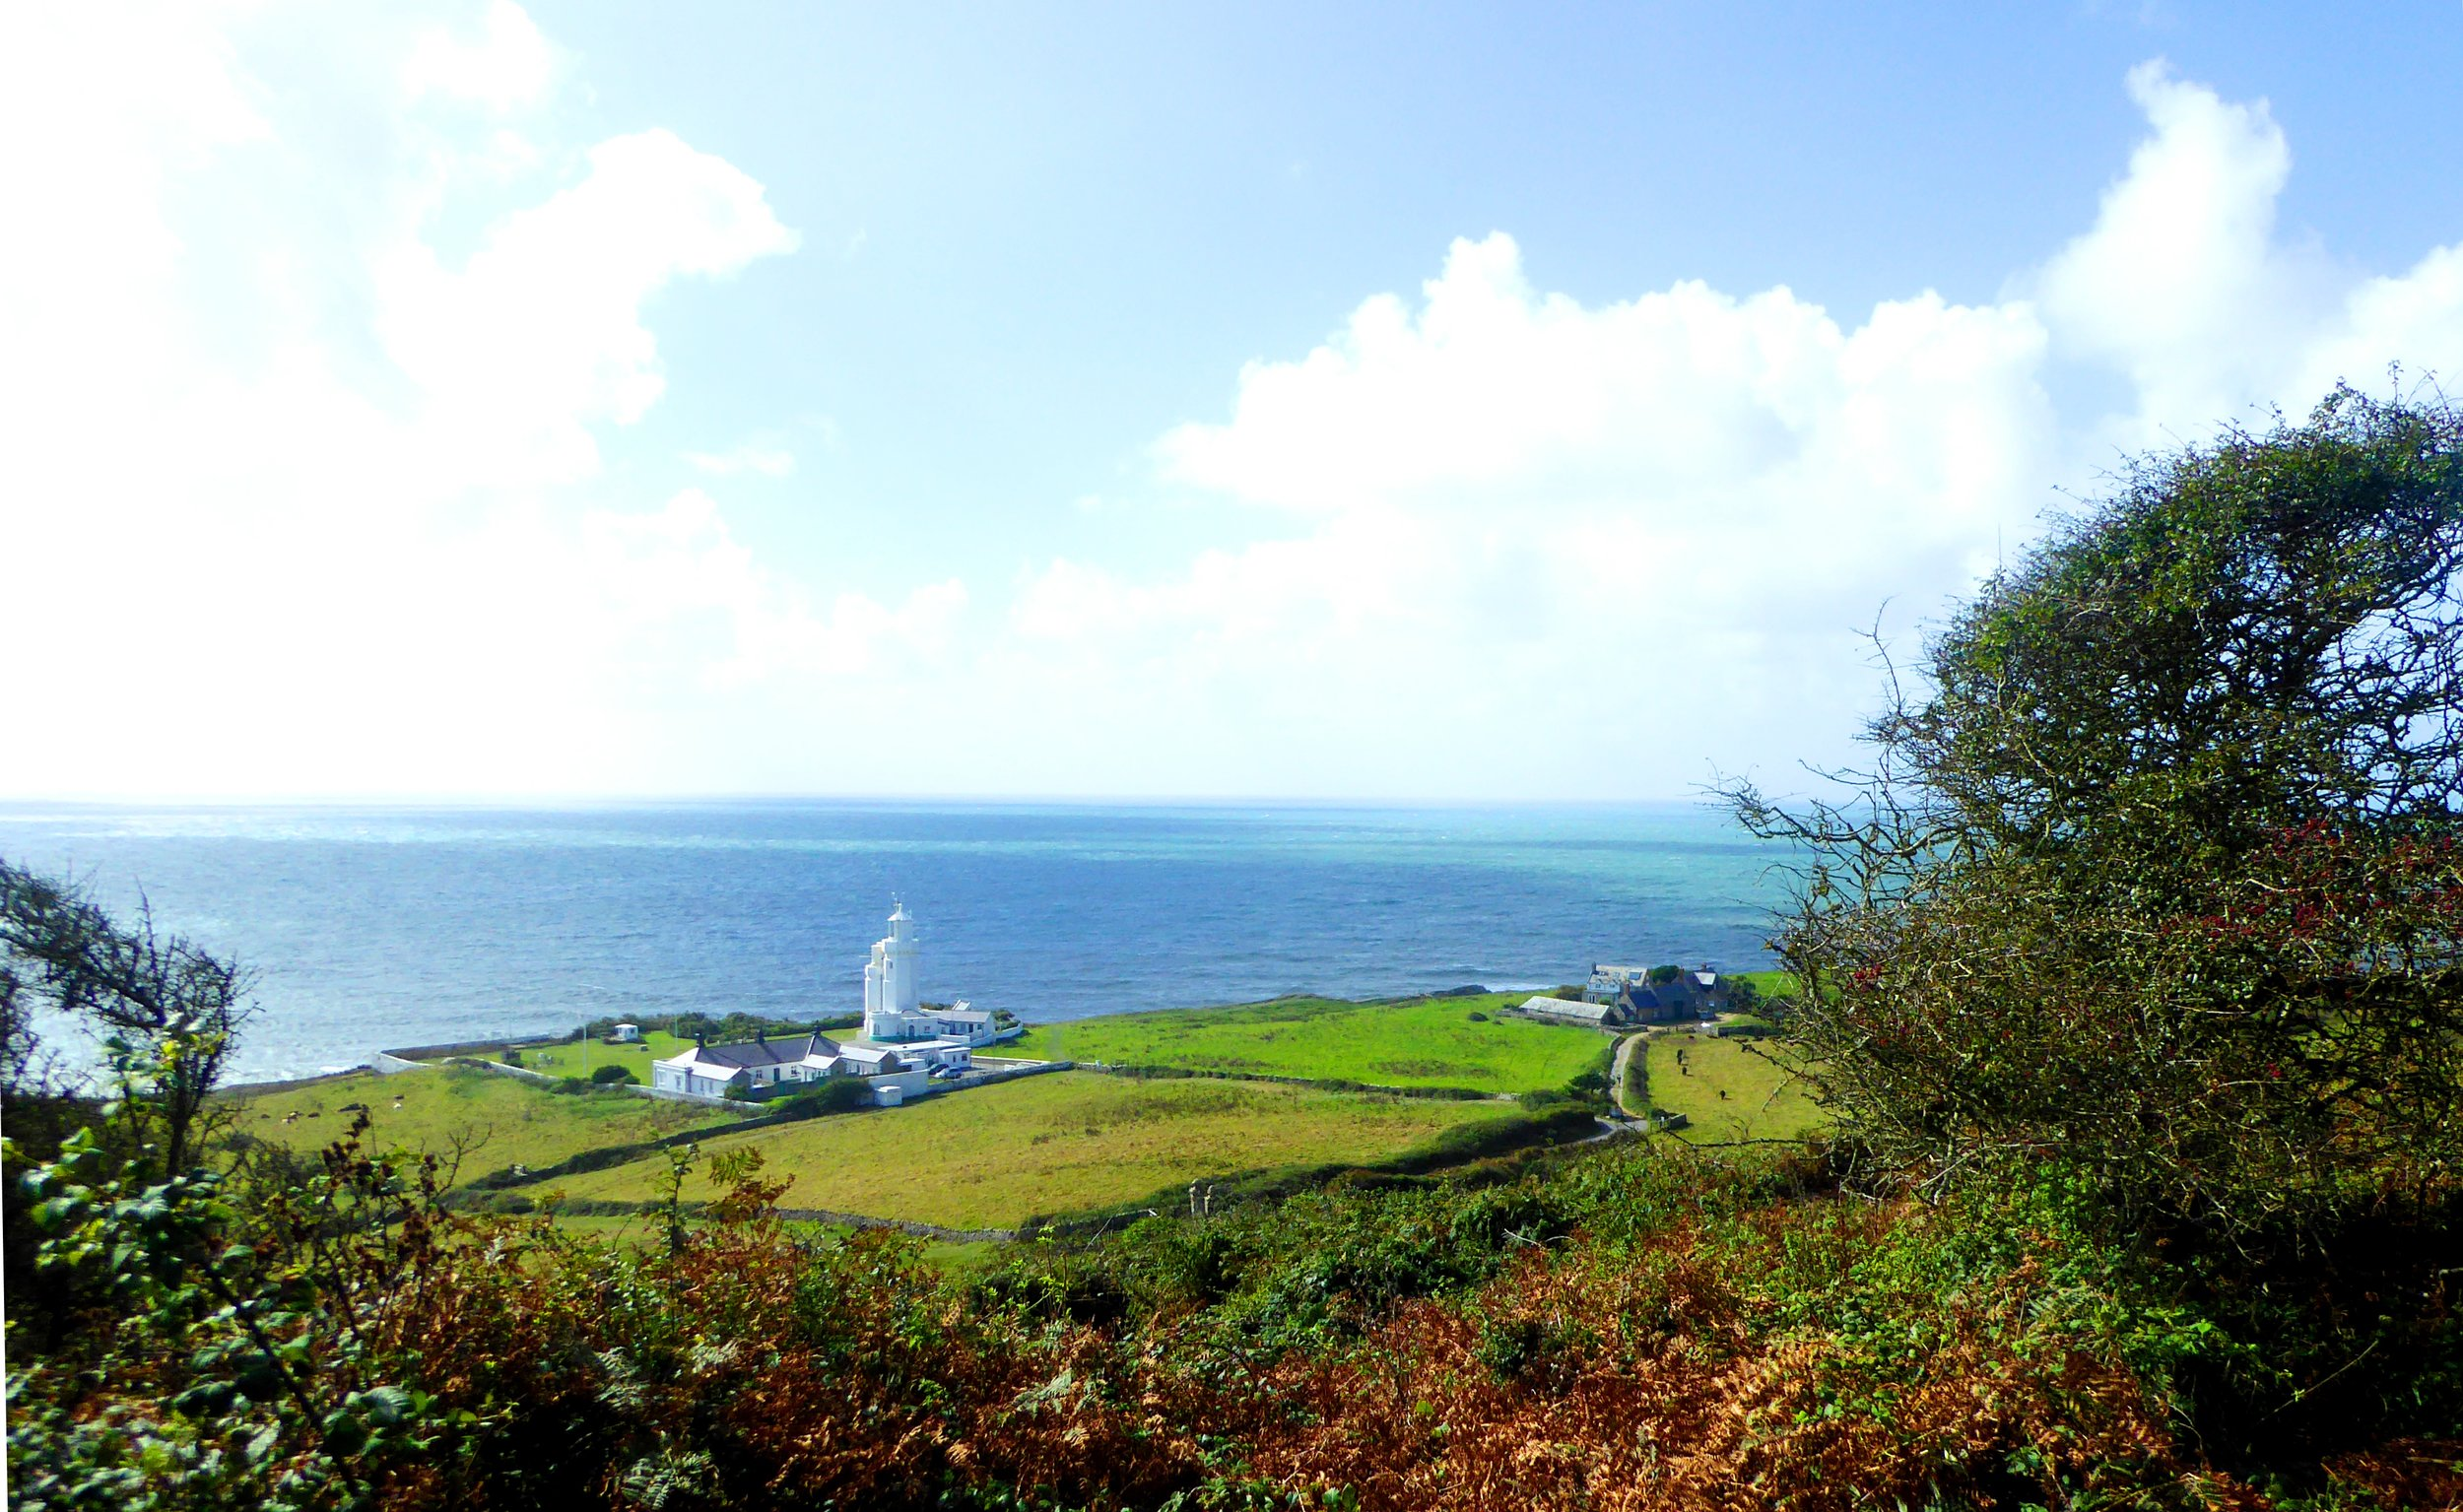 St. Catherine's Lighthouse, Isle of Wight